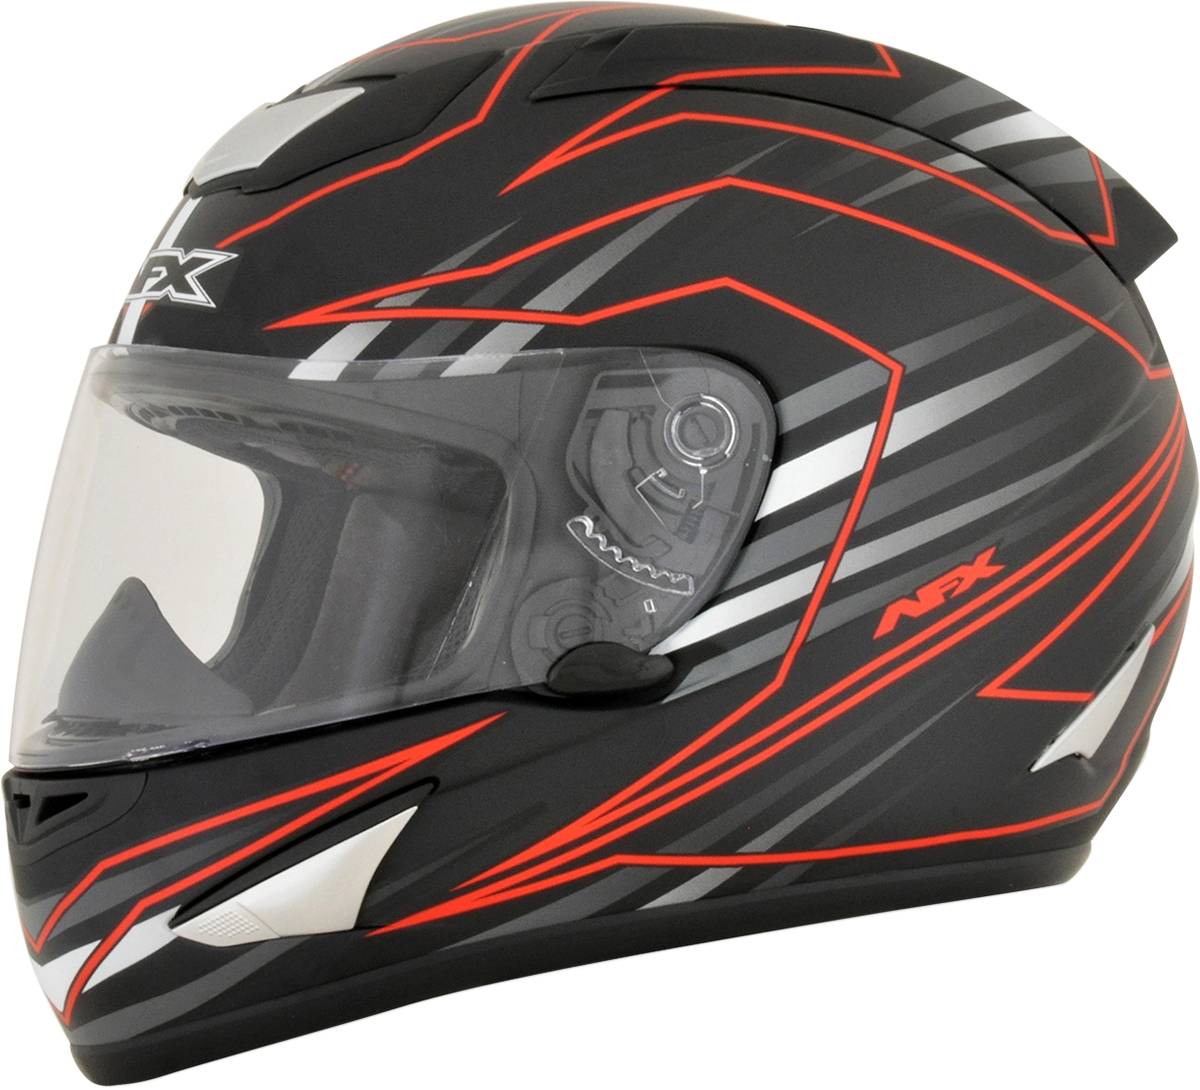 NEW AFX FX95 Full-Face Helmet Main Graphics MOTORCYCLE ...